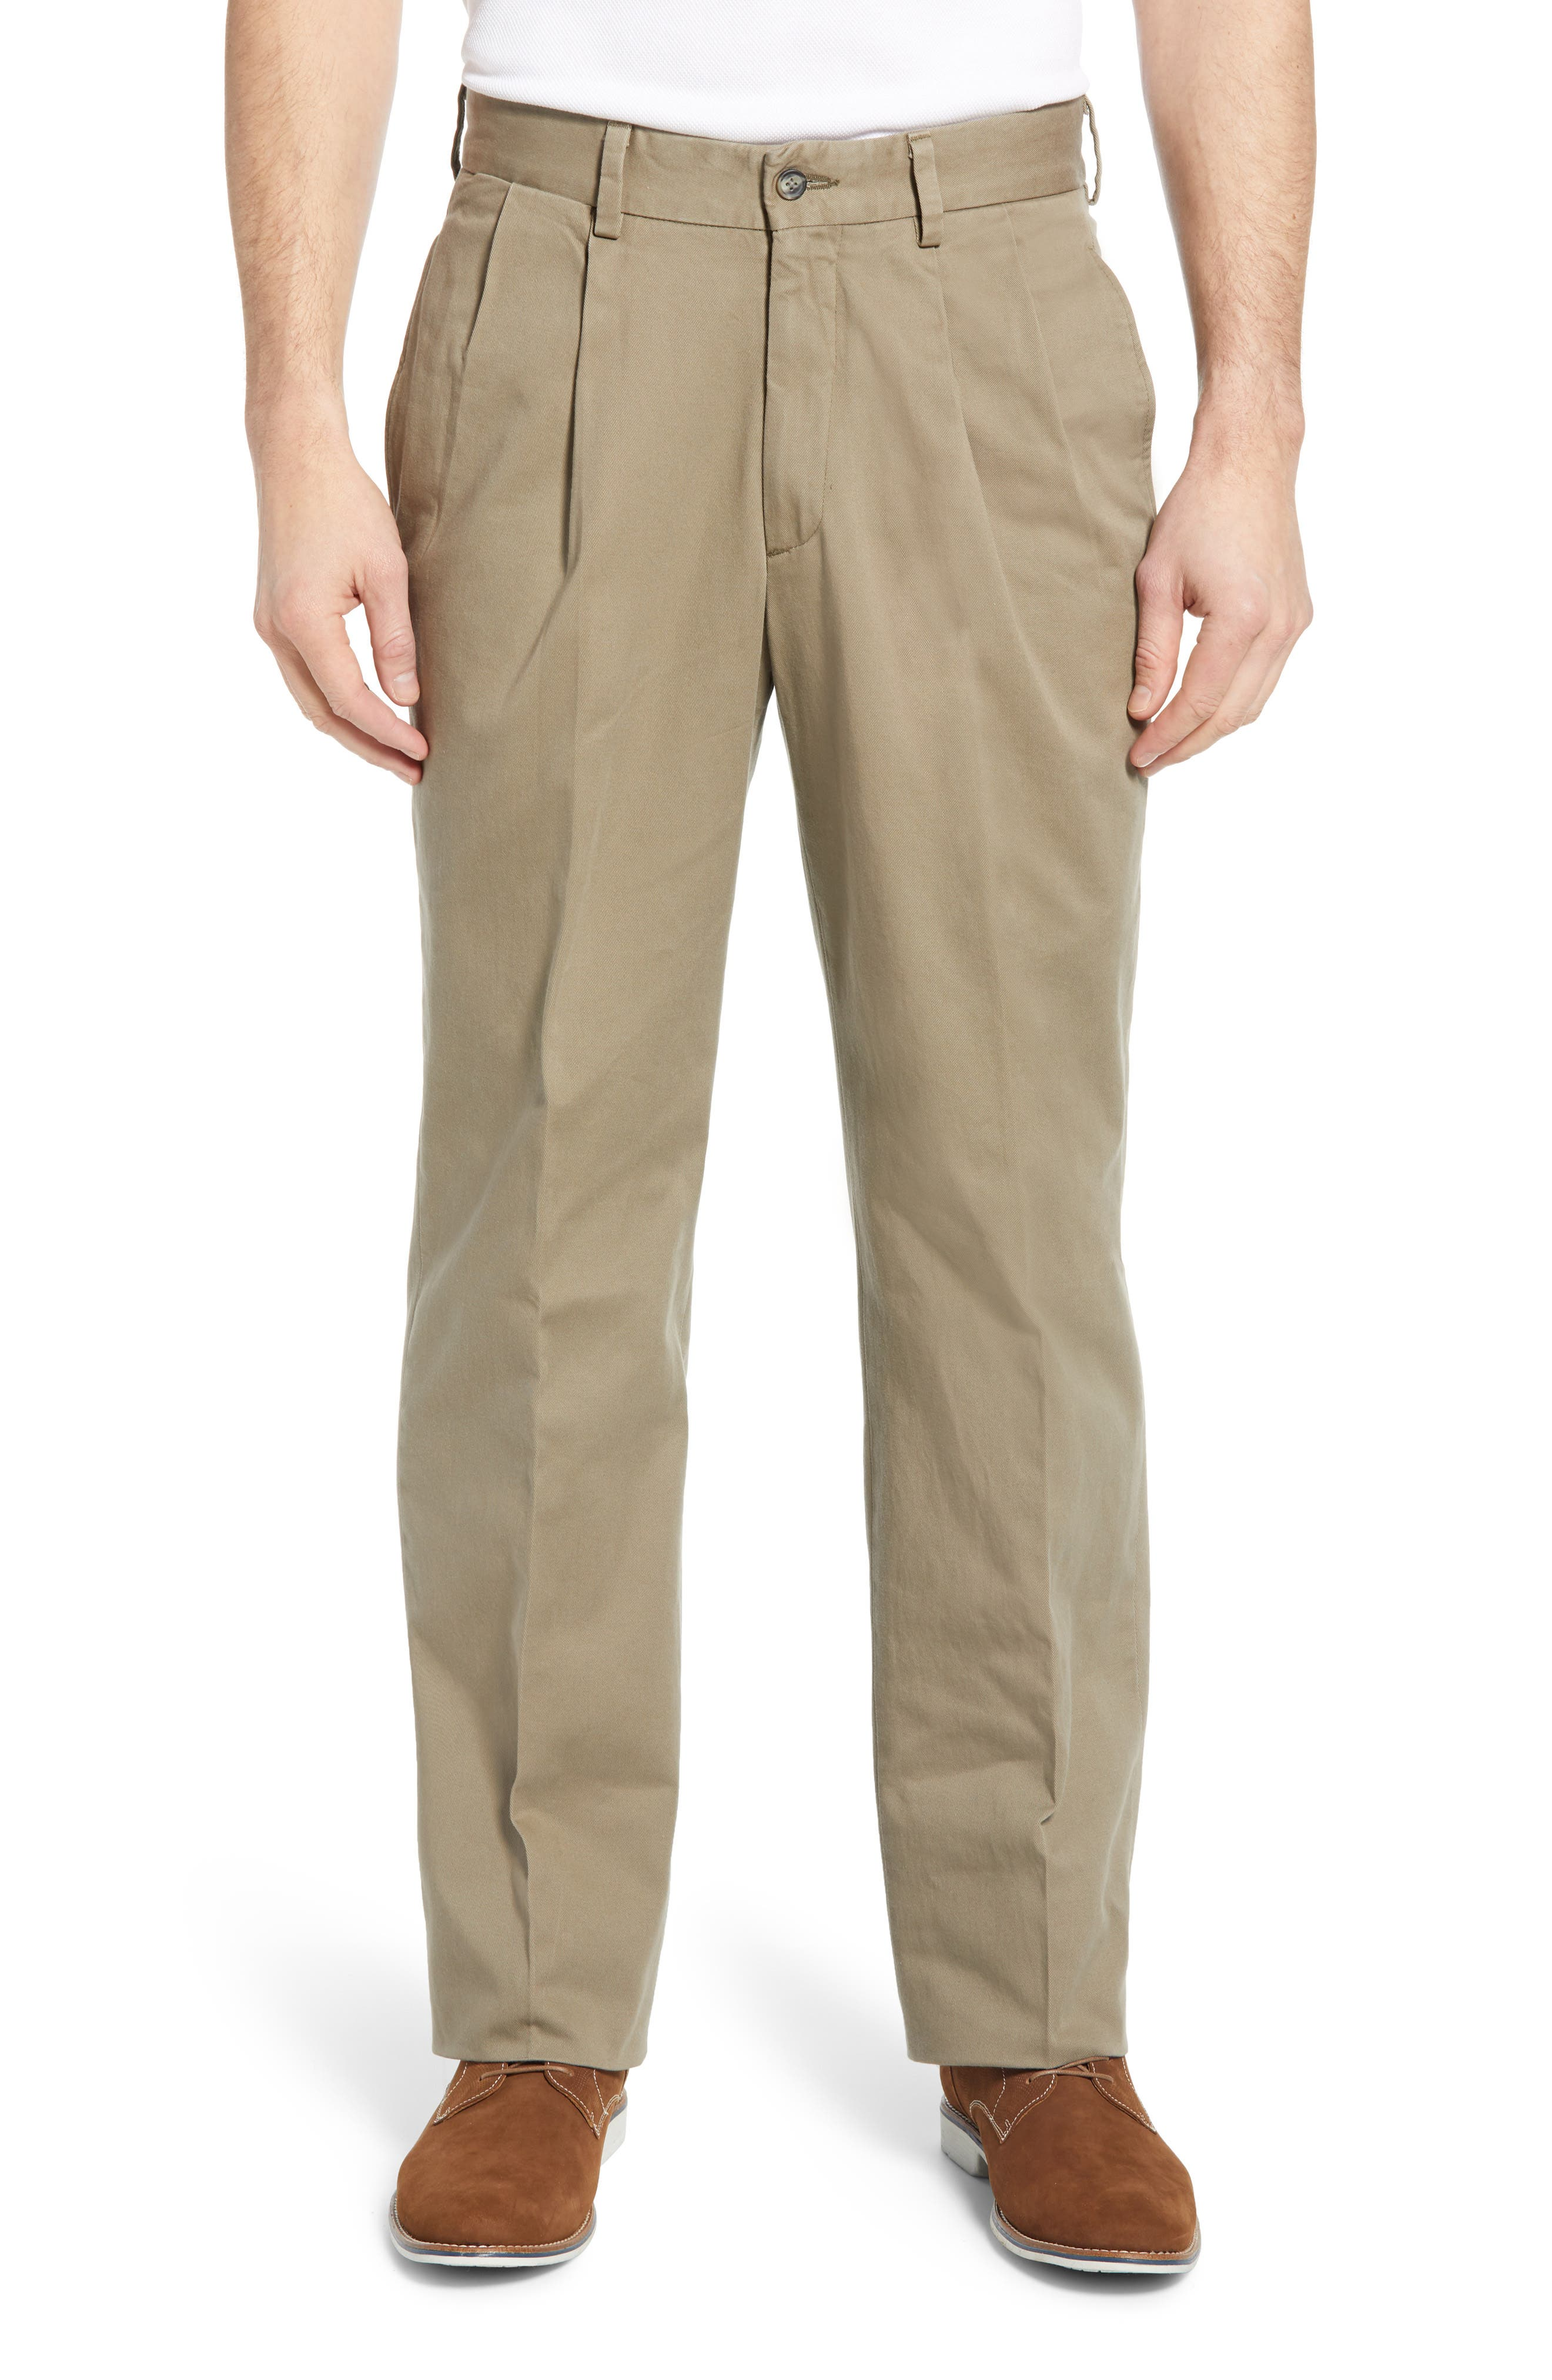 A pleated waist enhances the relaxed cut of these versatile chinos made from washed cotton twill. Style Name: Berle Charleston Pleated Chino Pants. Style Number: 6033024. Available in stores.